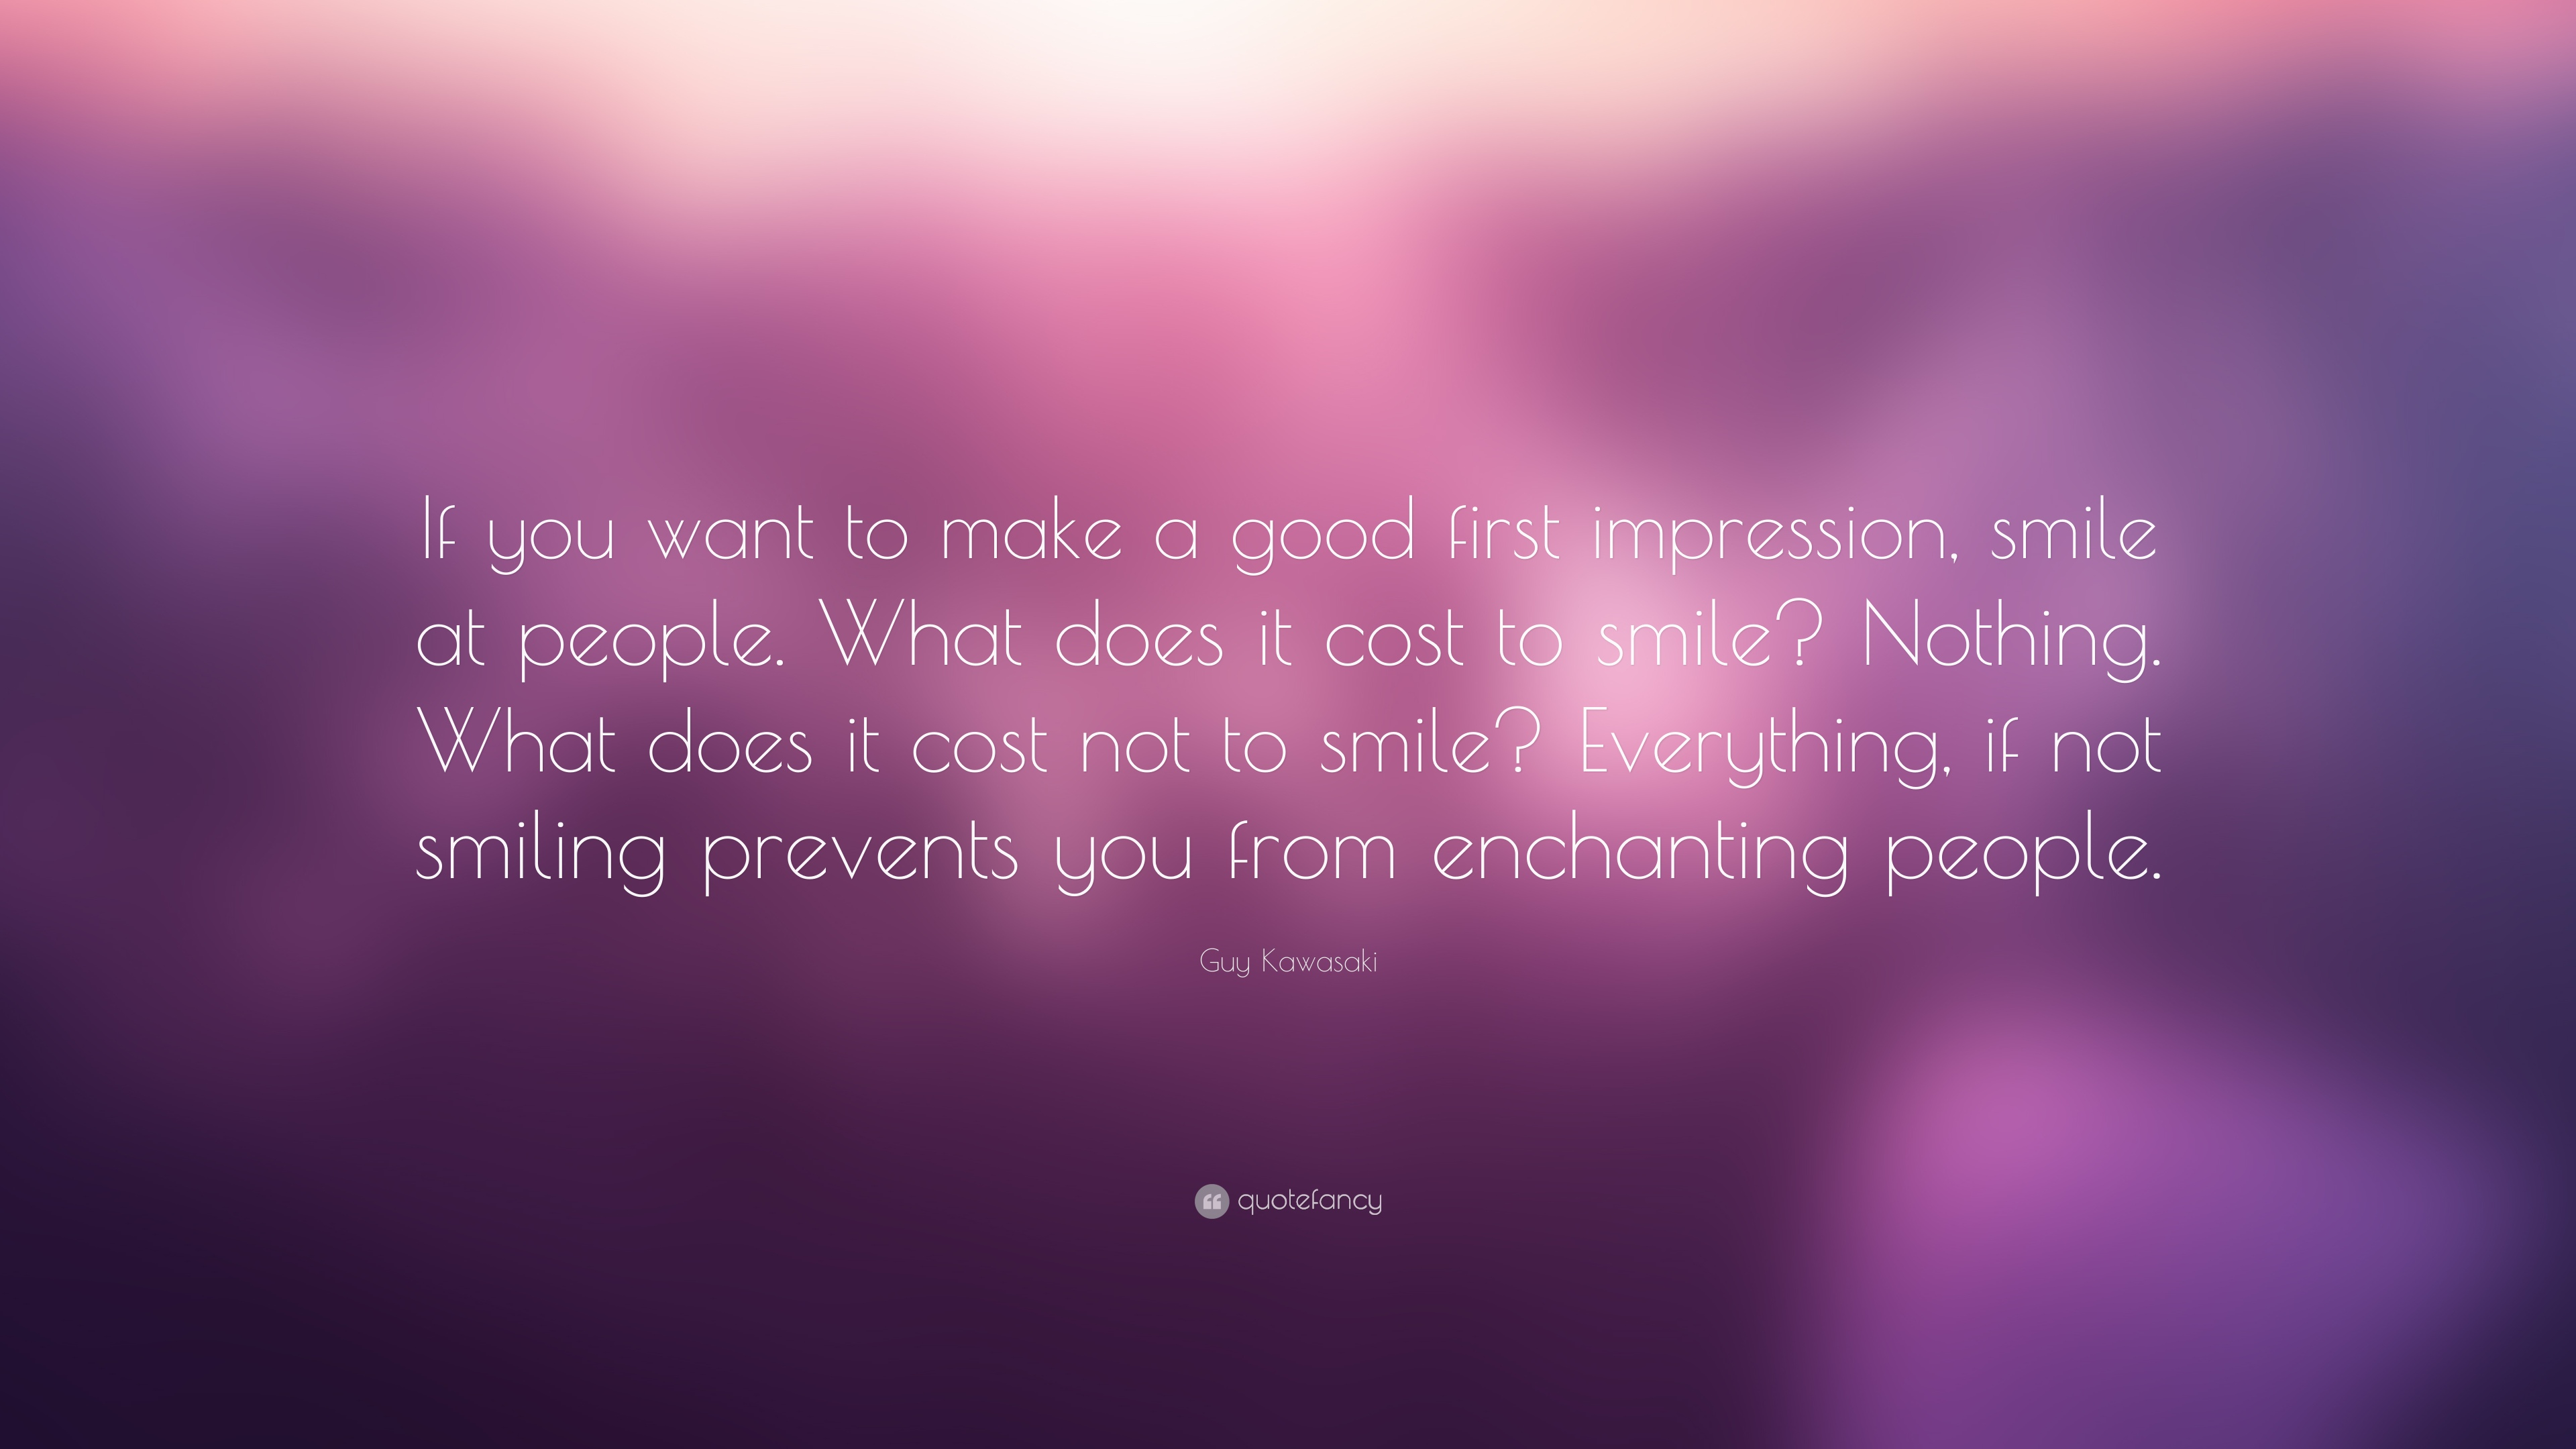 how to make a good impression on people